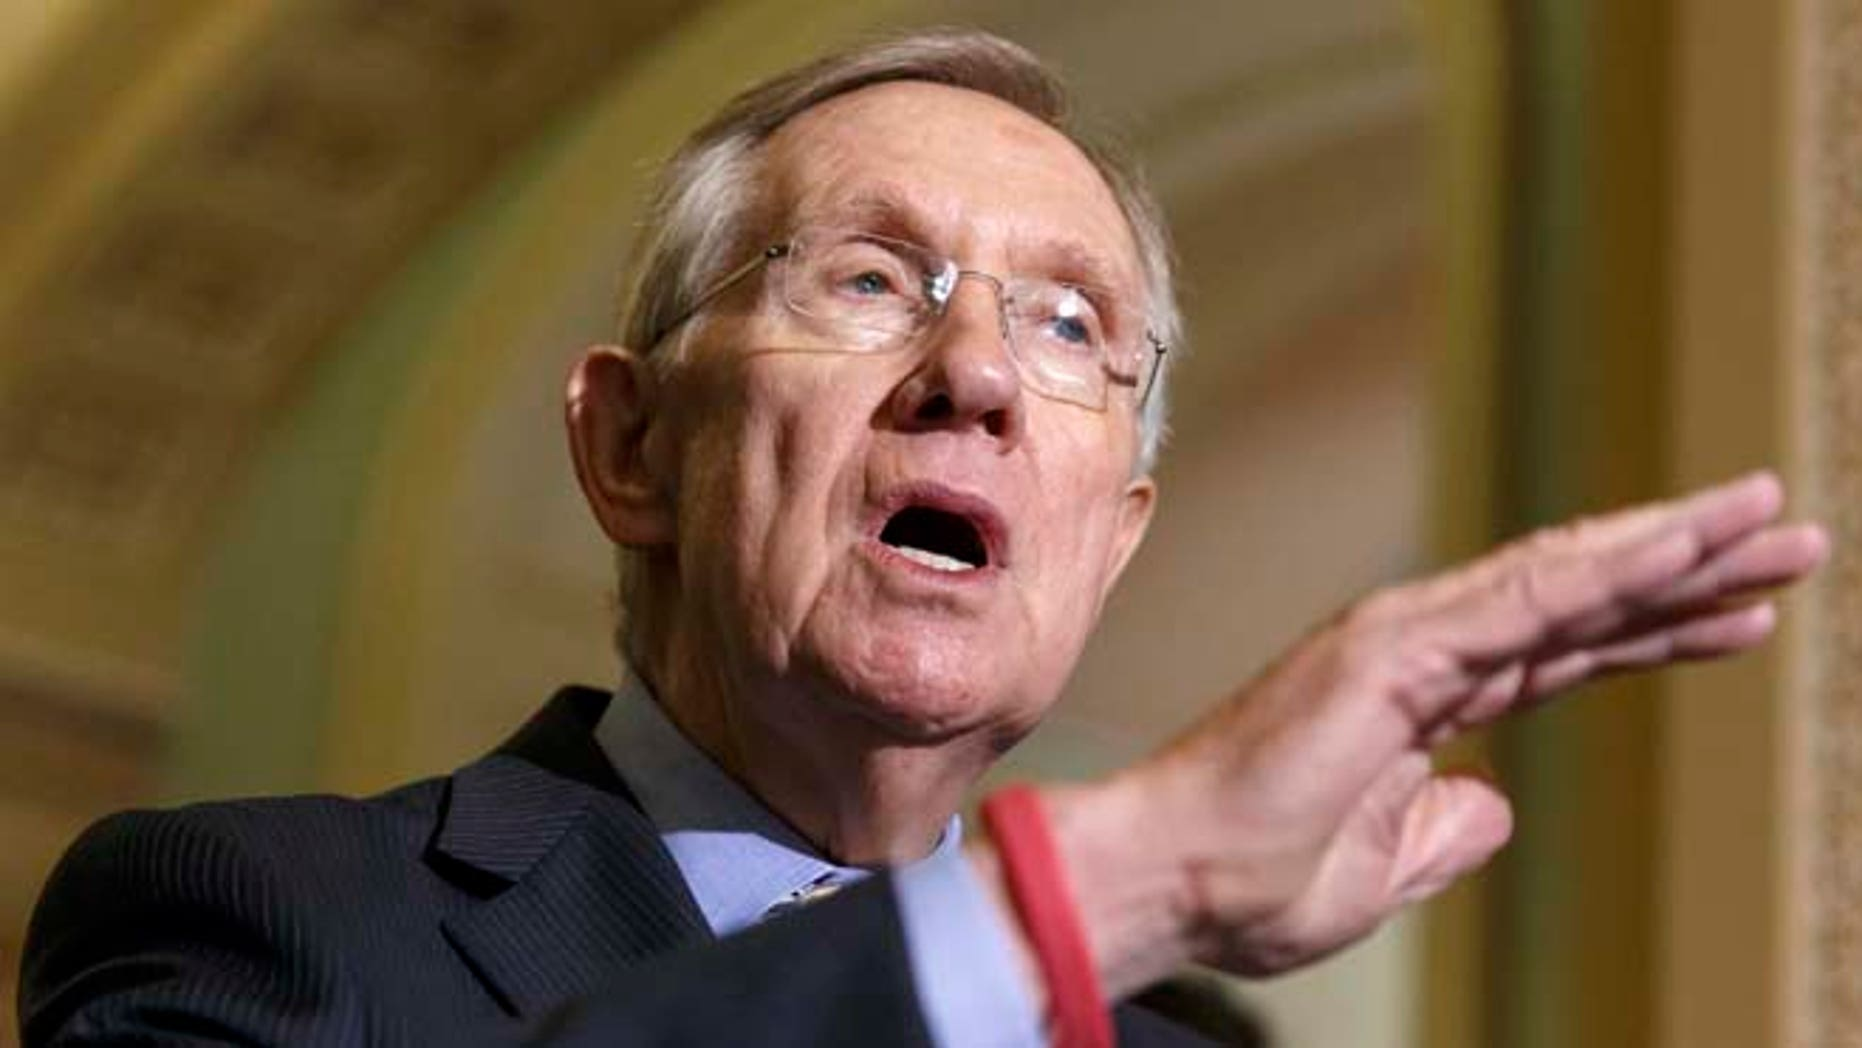 In this July 29, 2014 file photo, Senate Majority Leader Harry Reid of Nev. speaks on Capitol Hill in Washington.